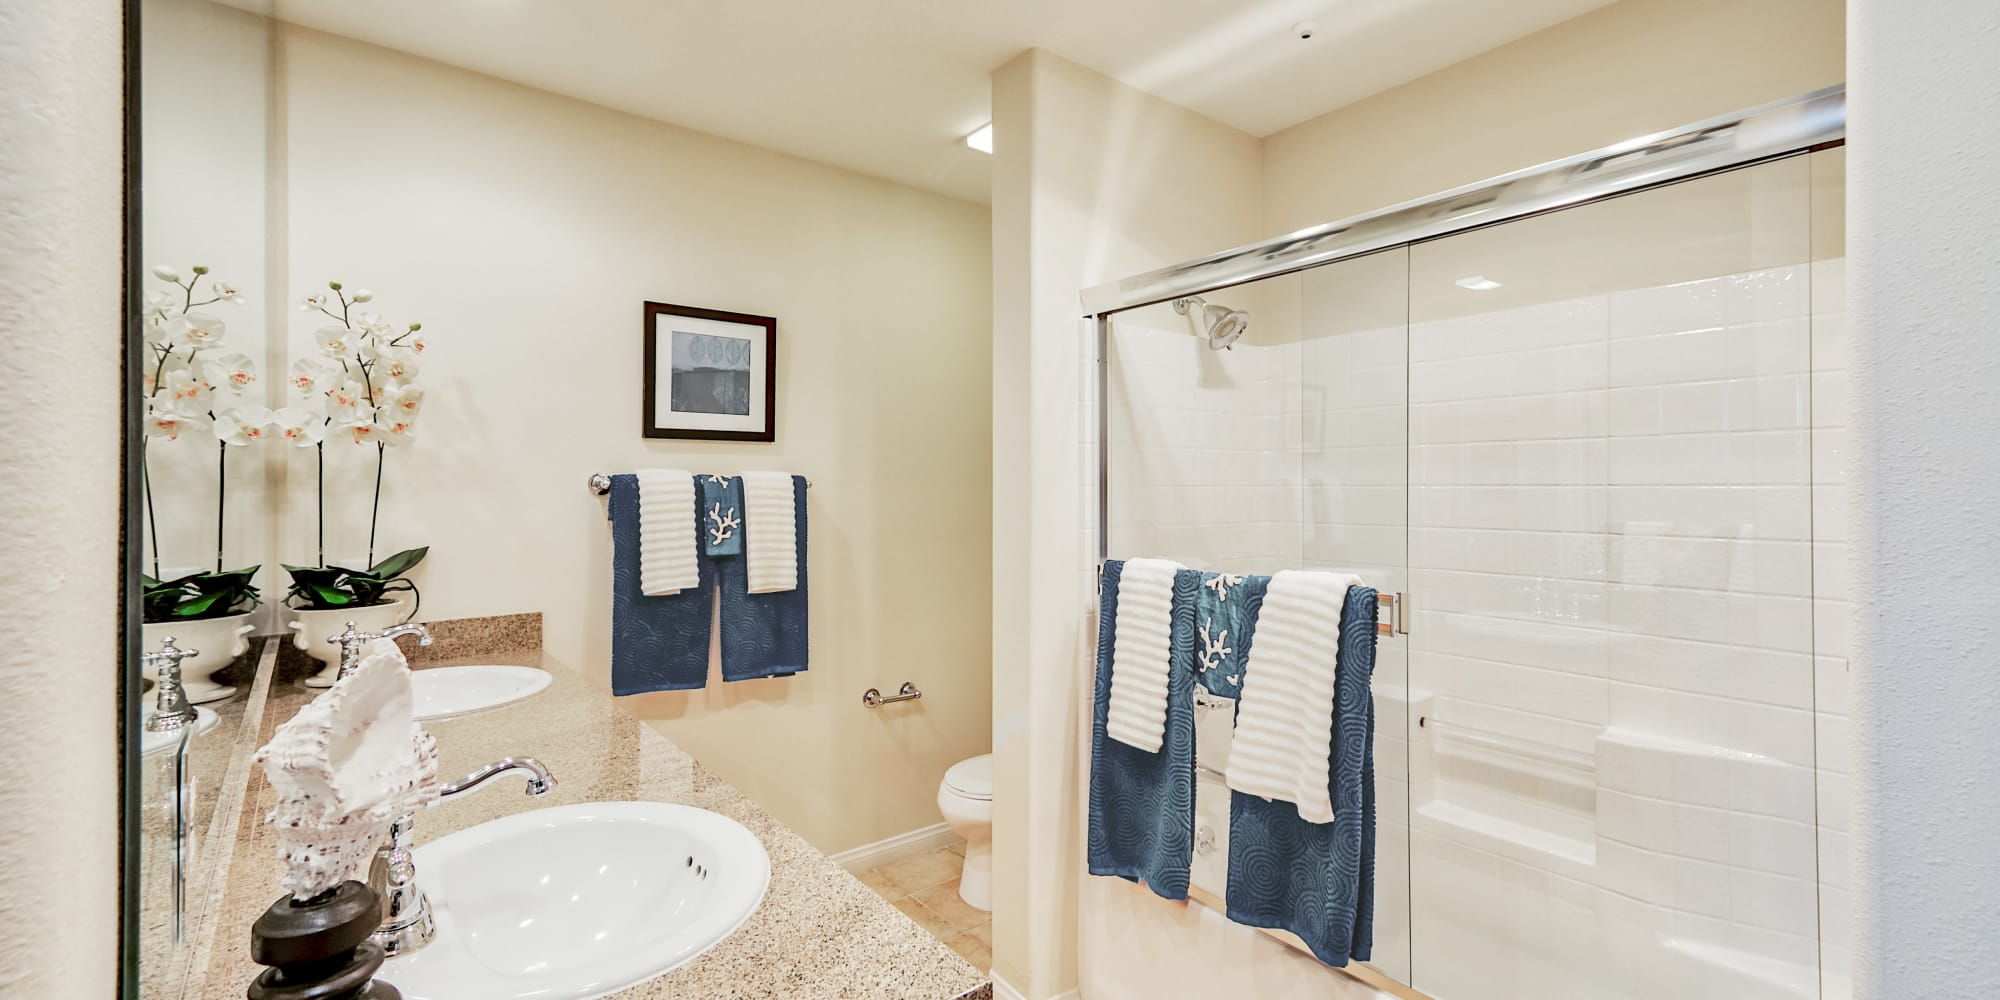 Bathroom with granite counter top and double sinks at The Villa at Marina Harbor in Marina del Rey, California